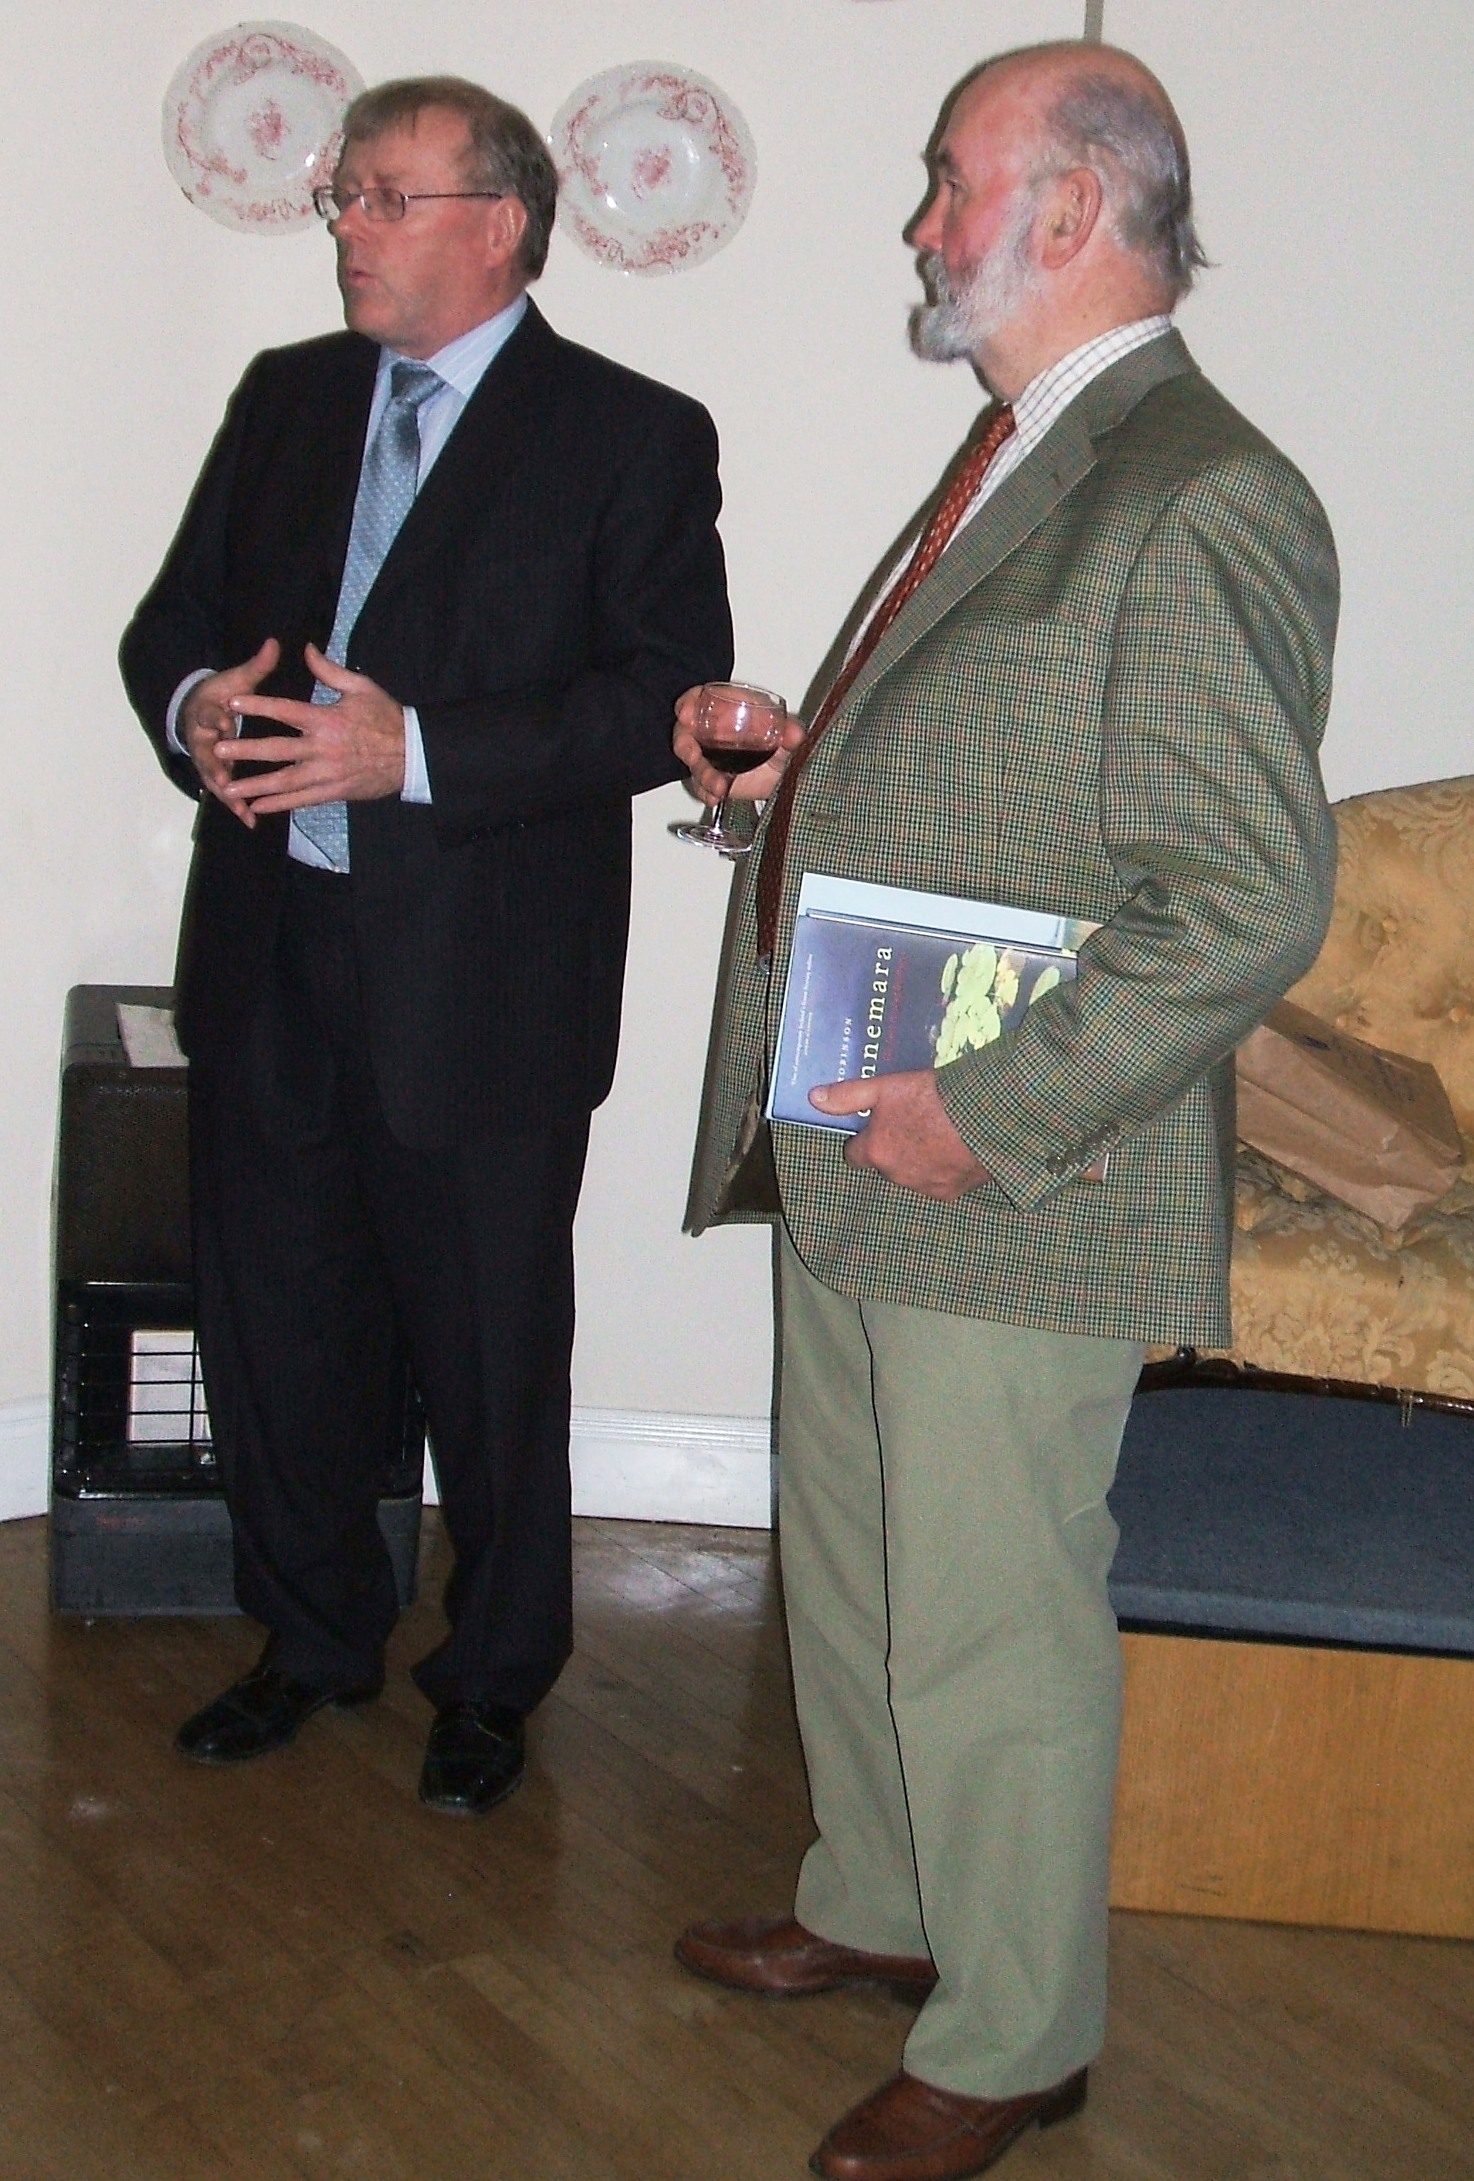 Photographer John Petch received a books as a token of appreciation from society President Dermot Power